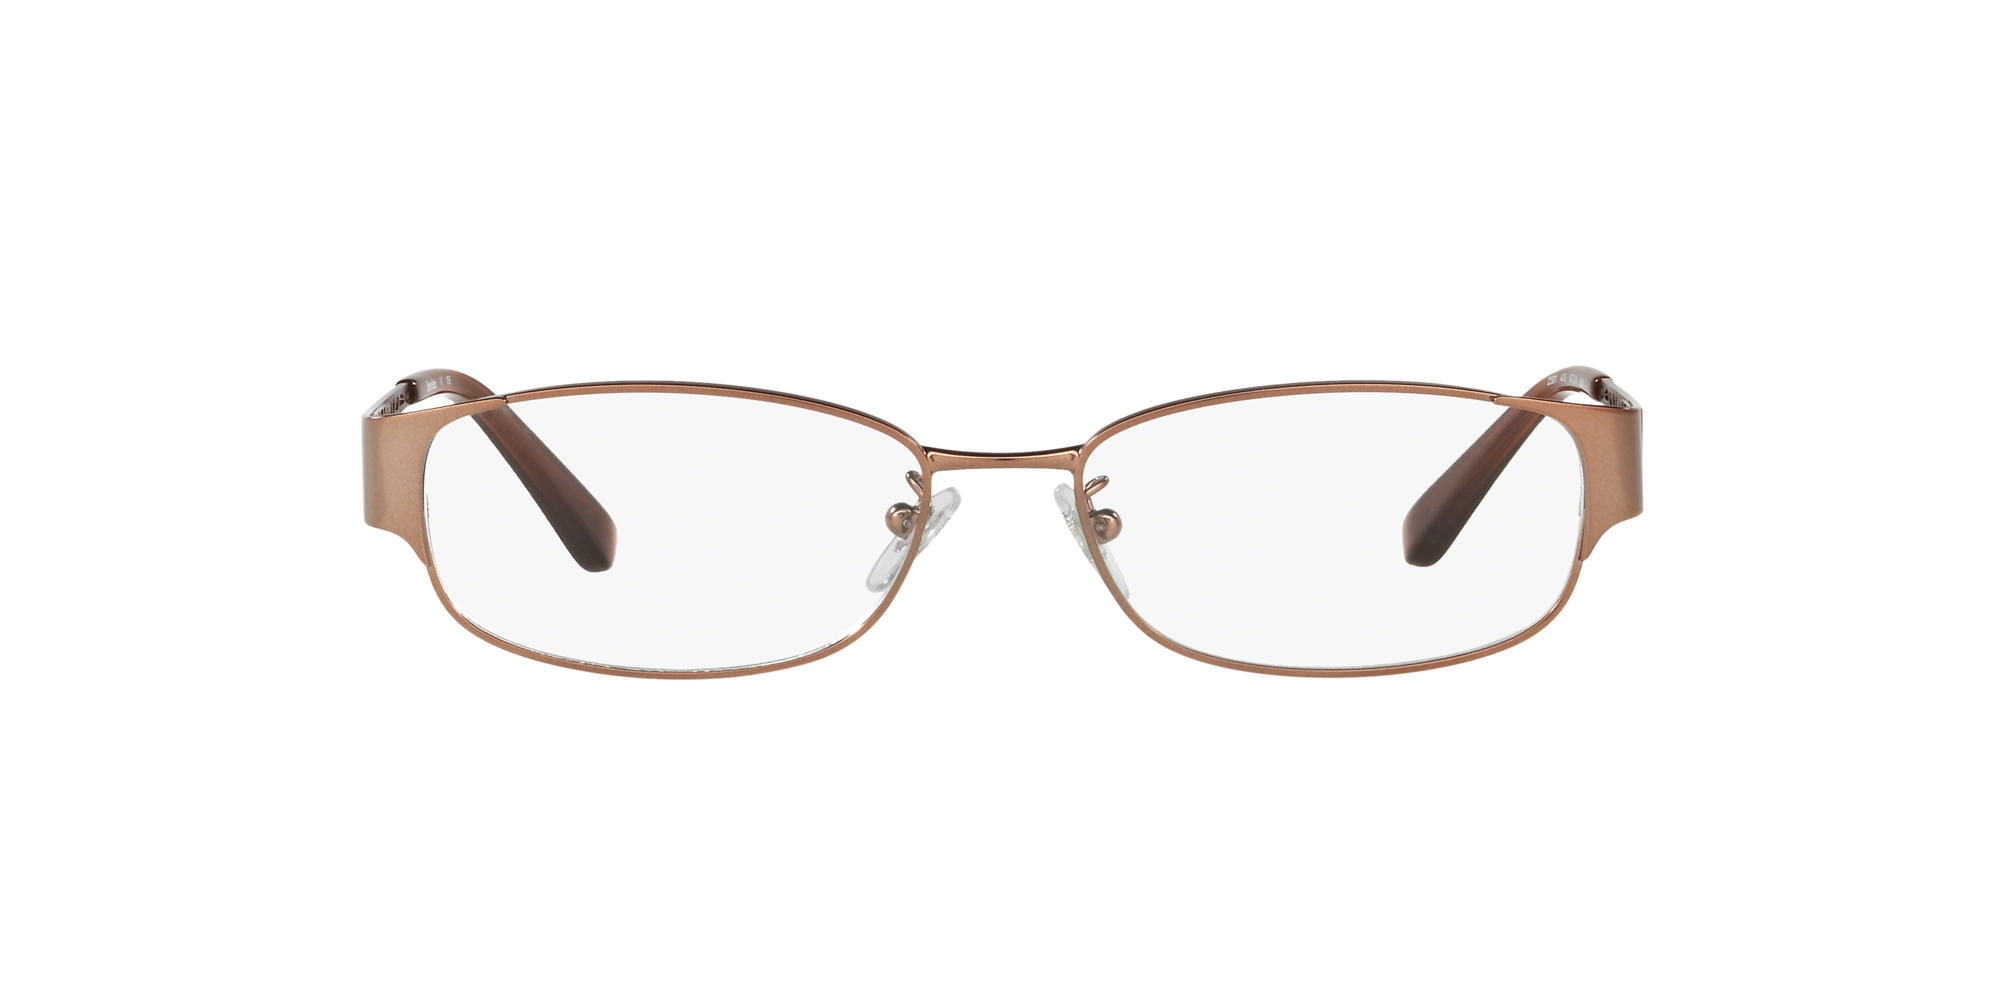 Image for SF2581 from LensCrafters | Glasses, Prescription Glasses Online, Eyewear